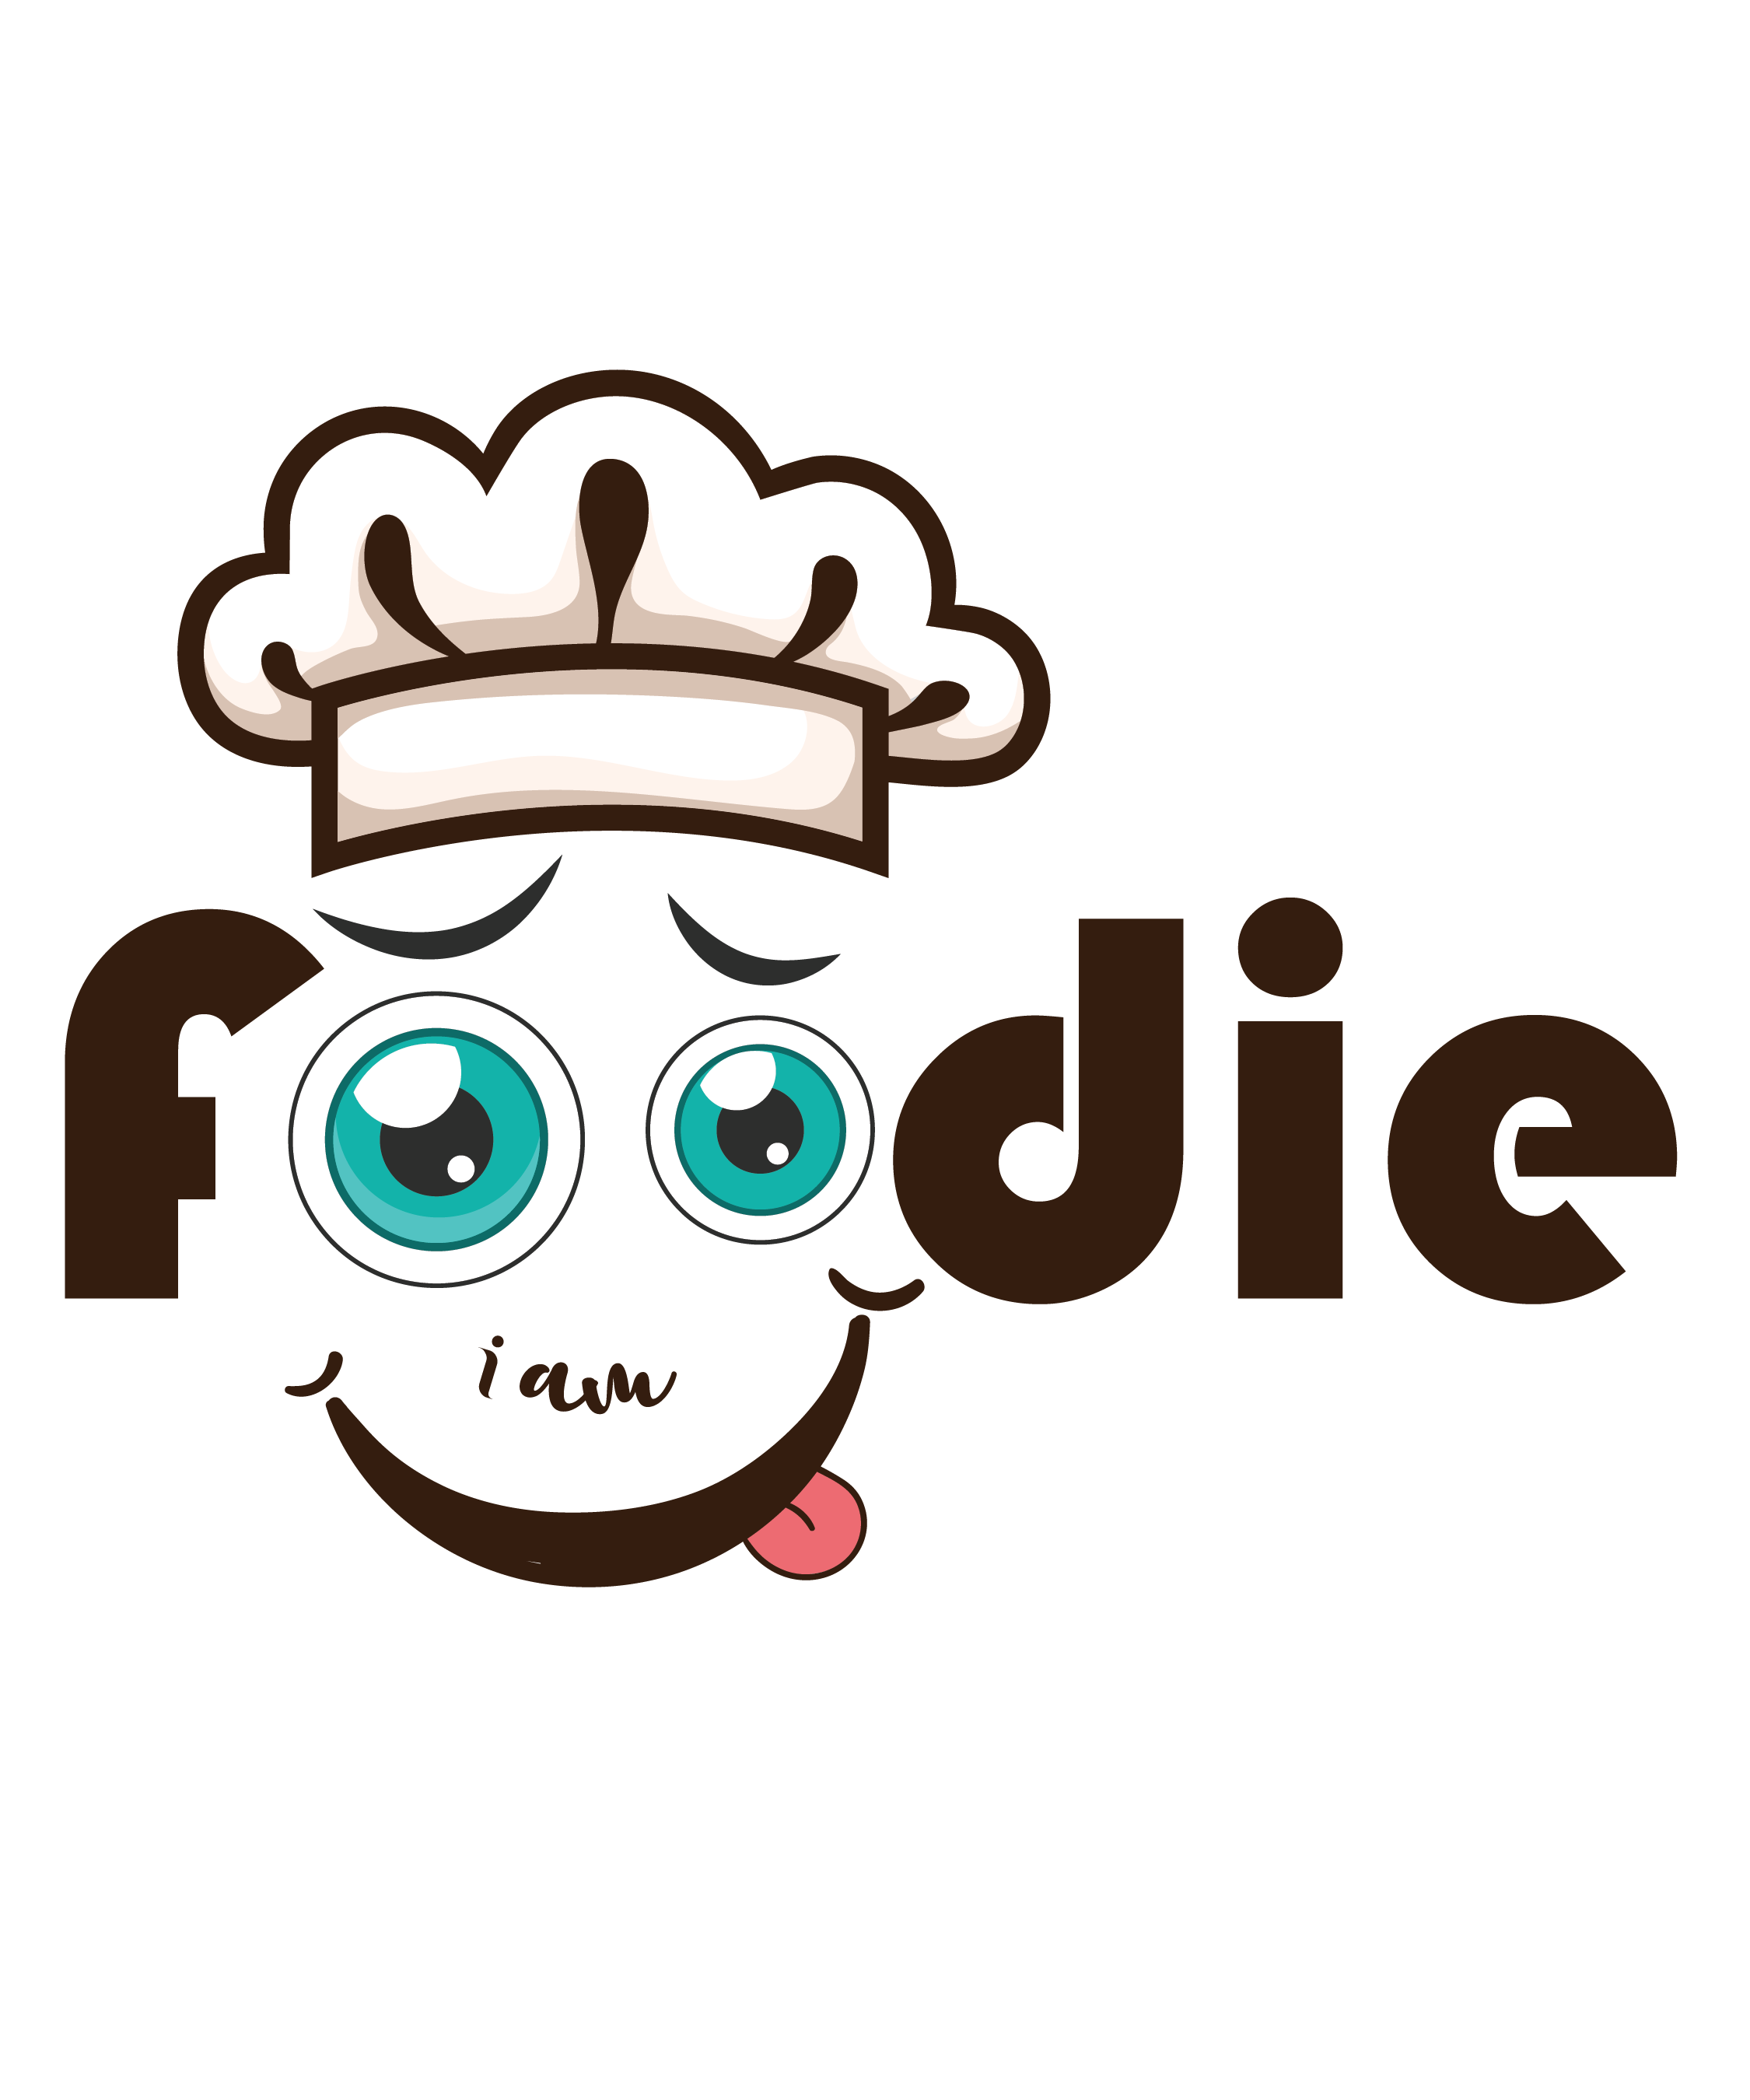 FOODIE-Graphic T-shirt